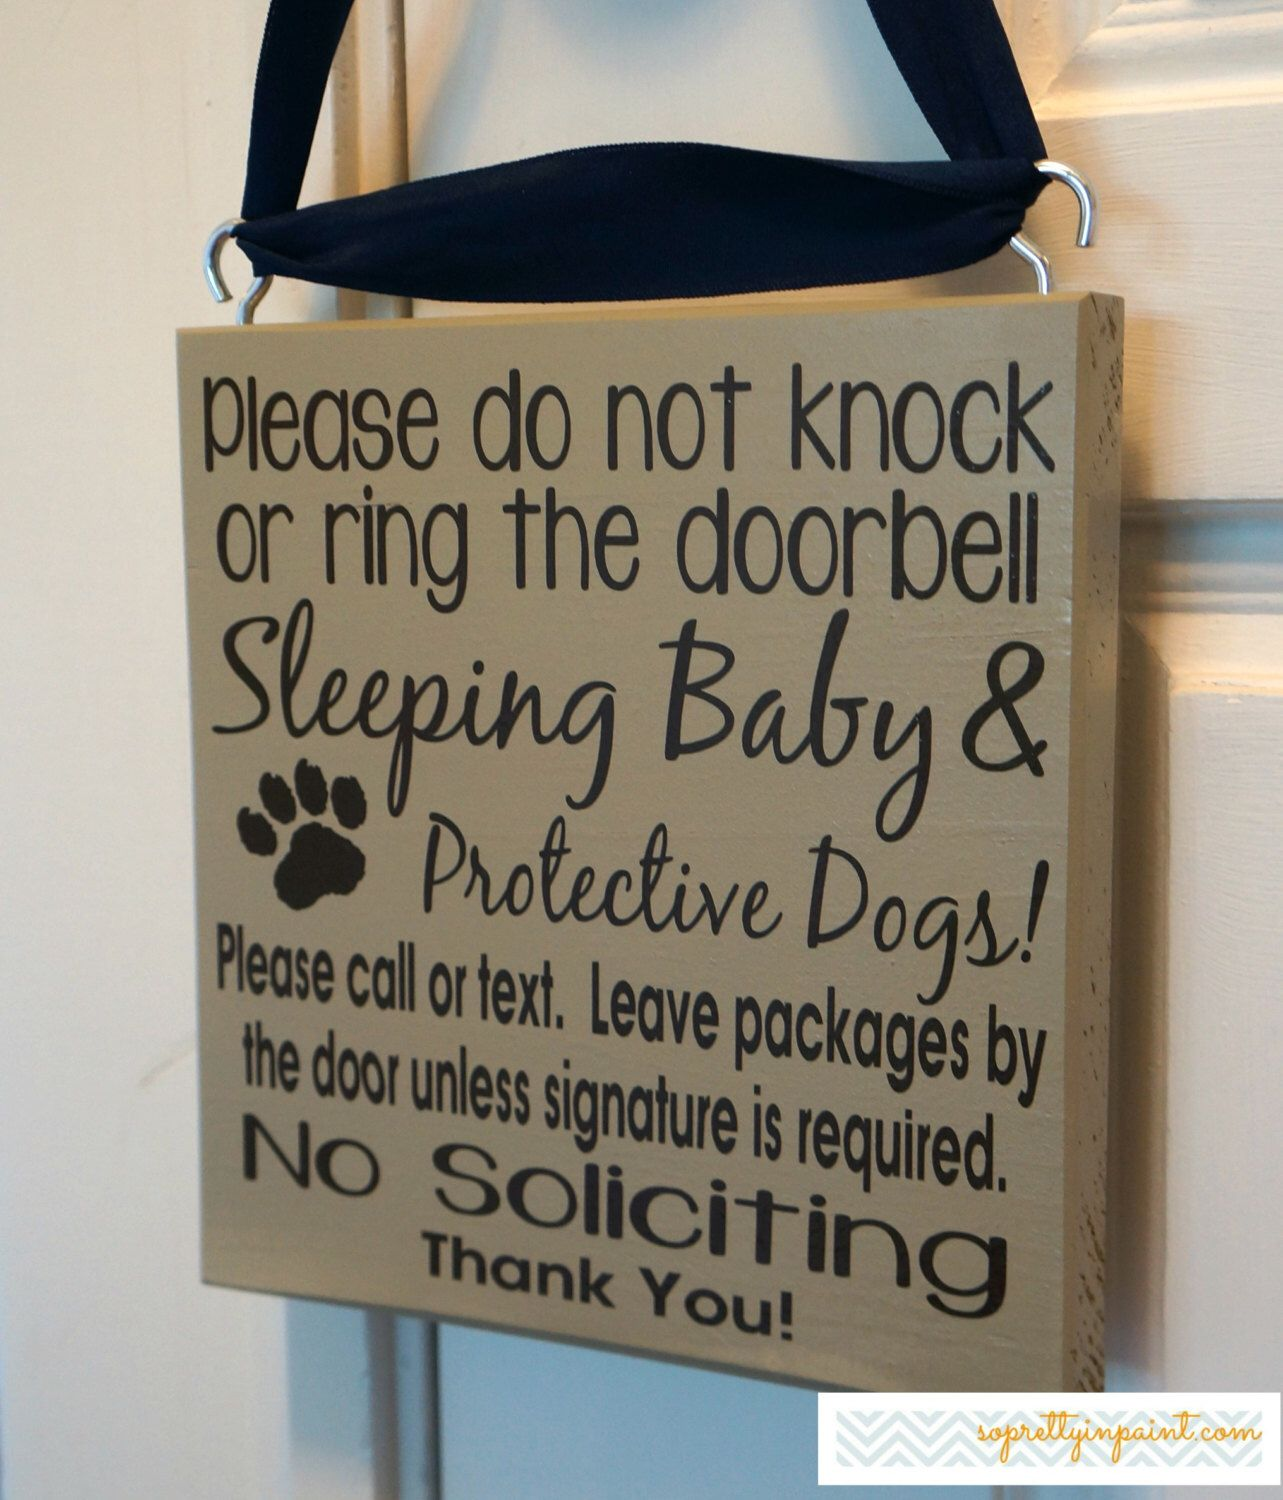 Please do not knock or ring the doorbell. Sleeping Baby